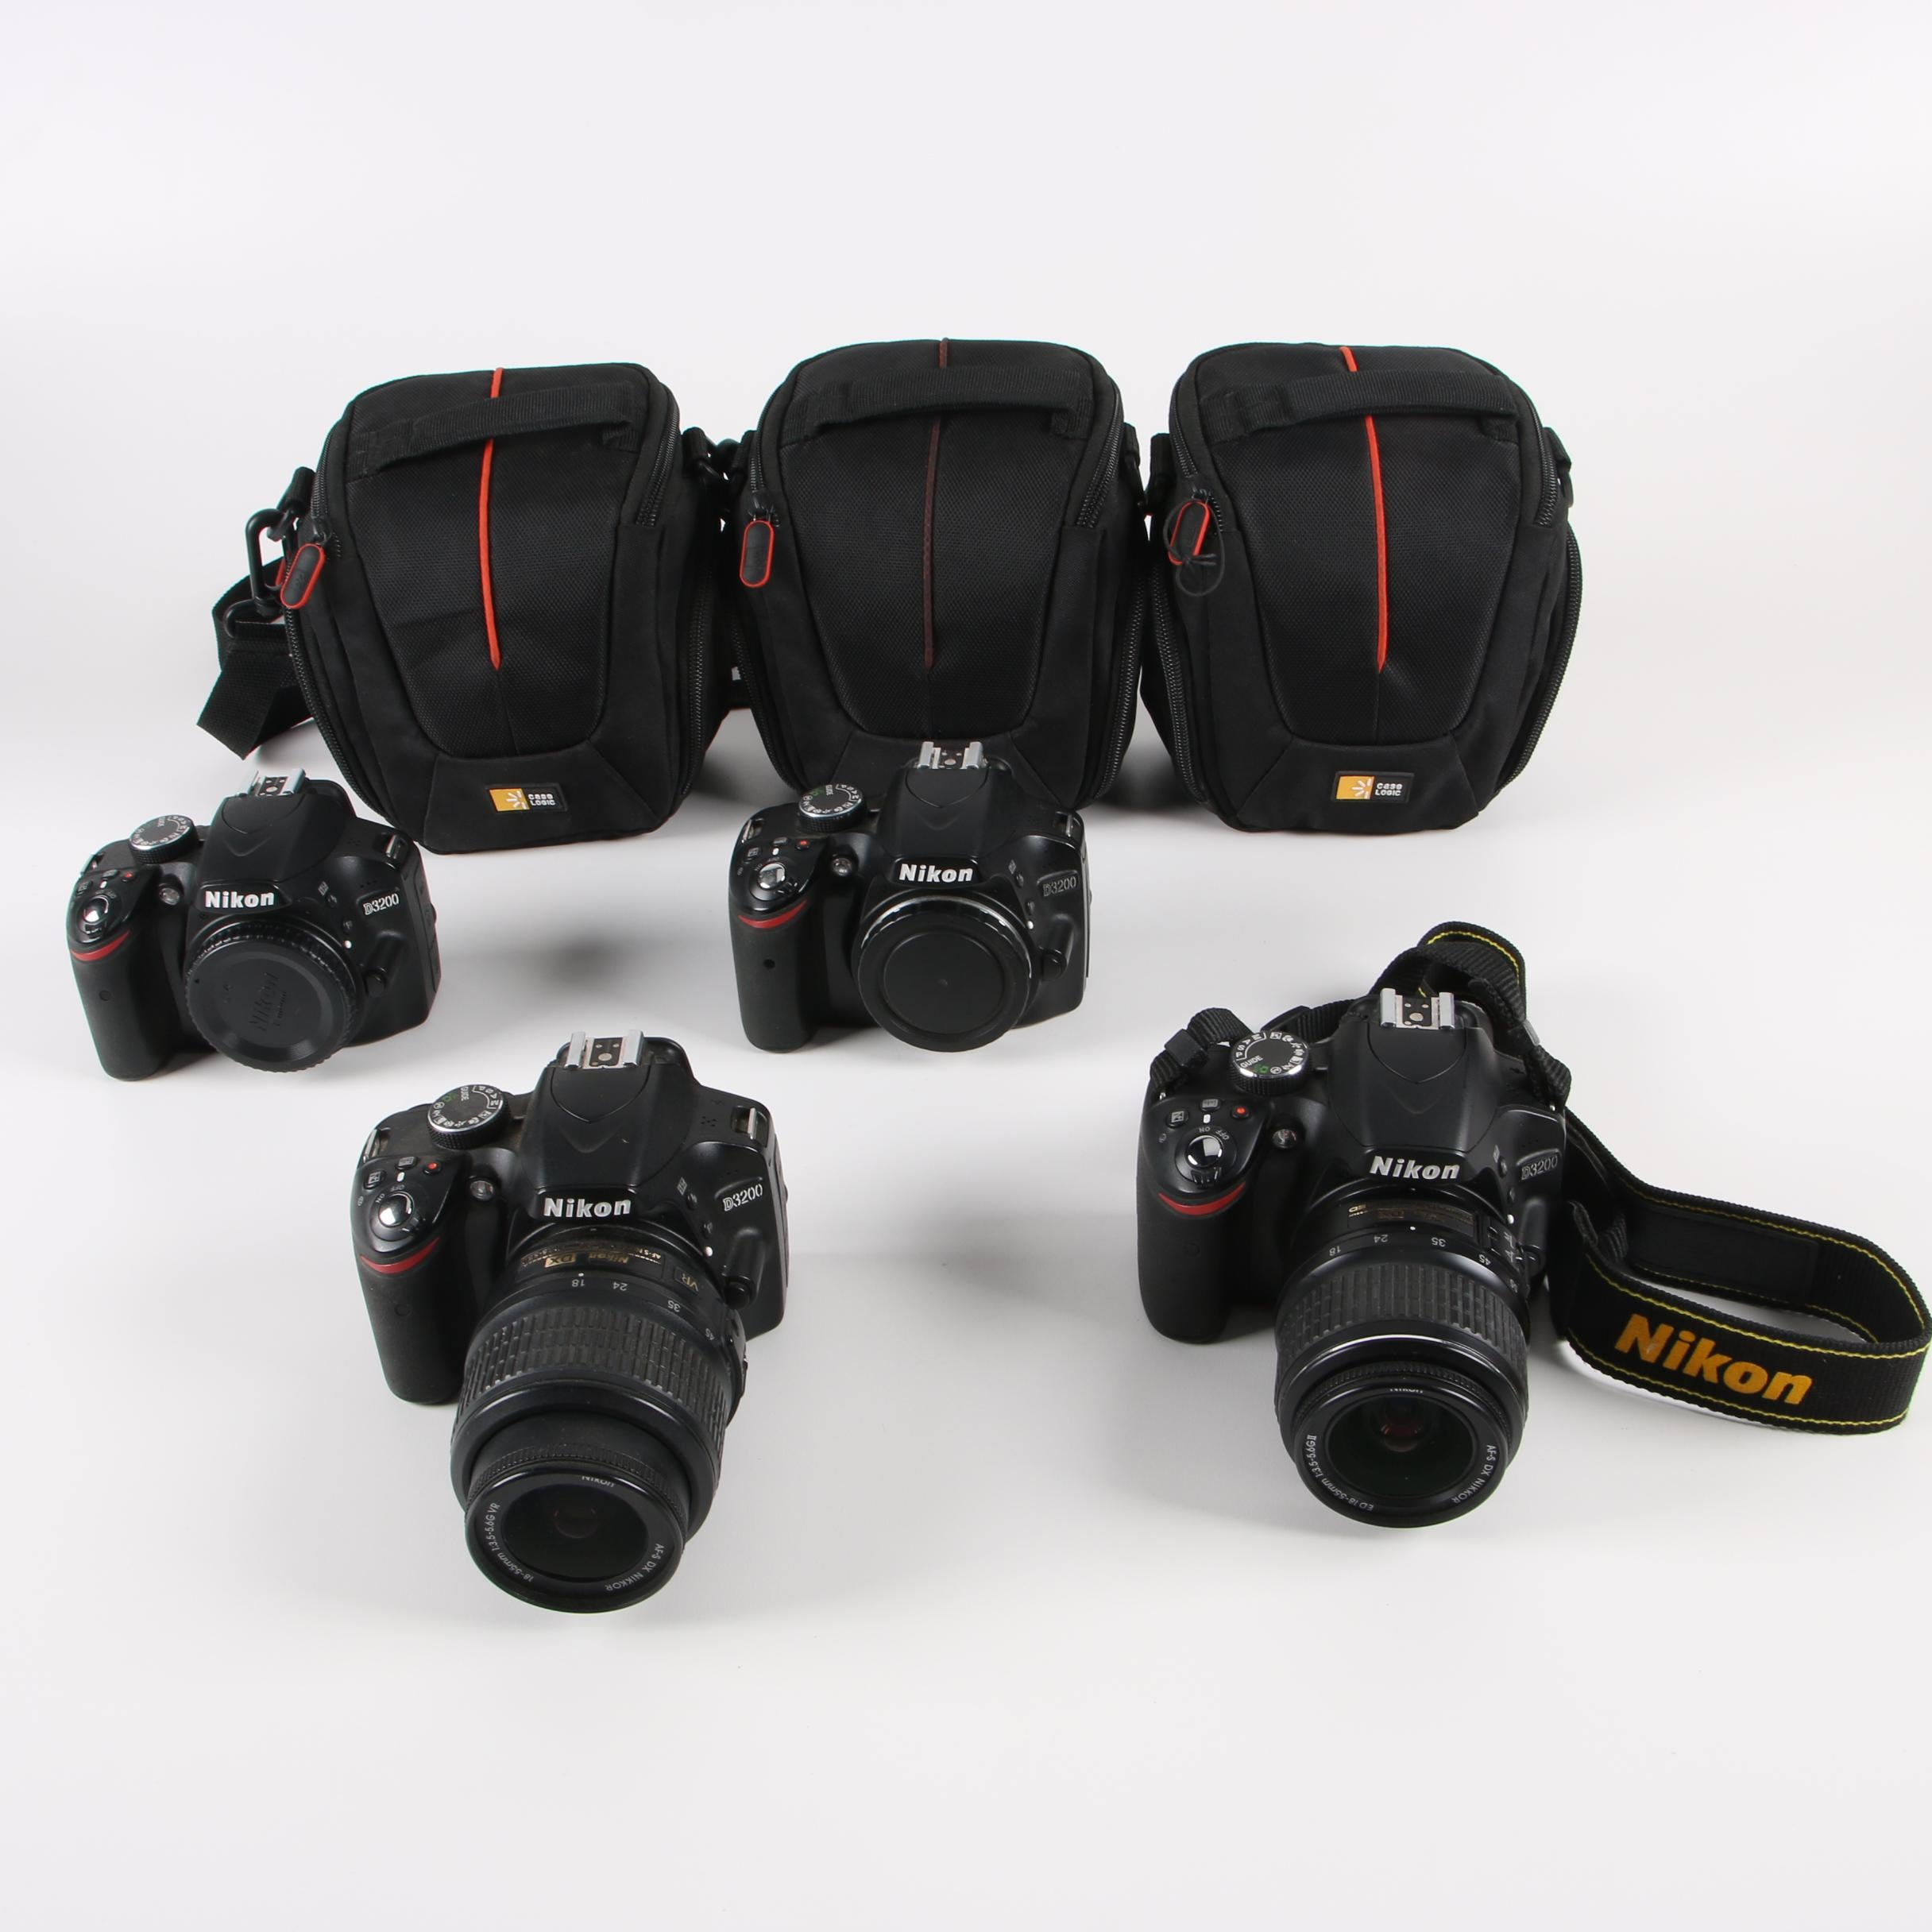 Nikon D3200 DSLR Camera Bodies with Lenses and Bags